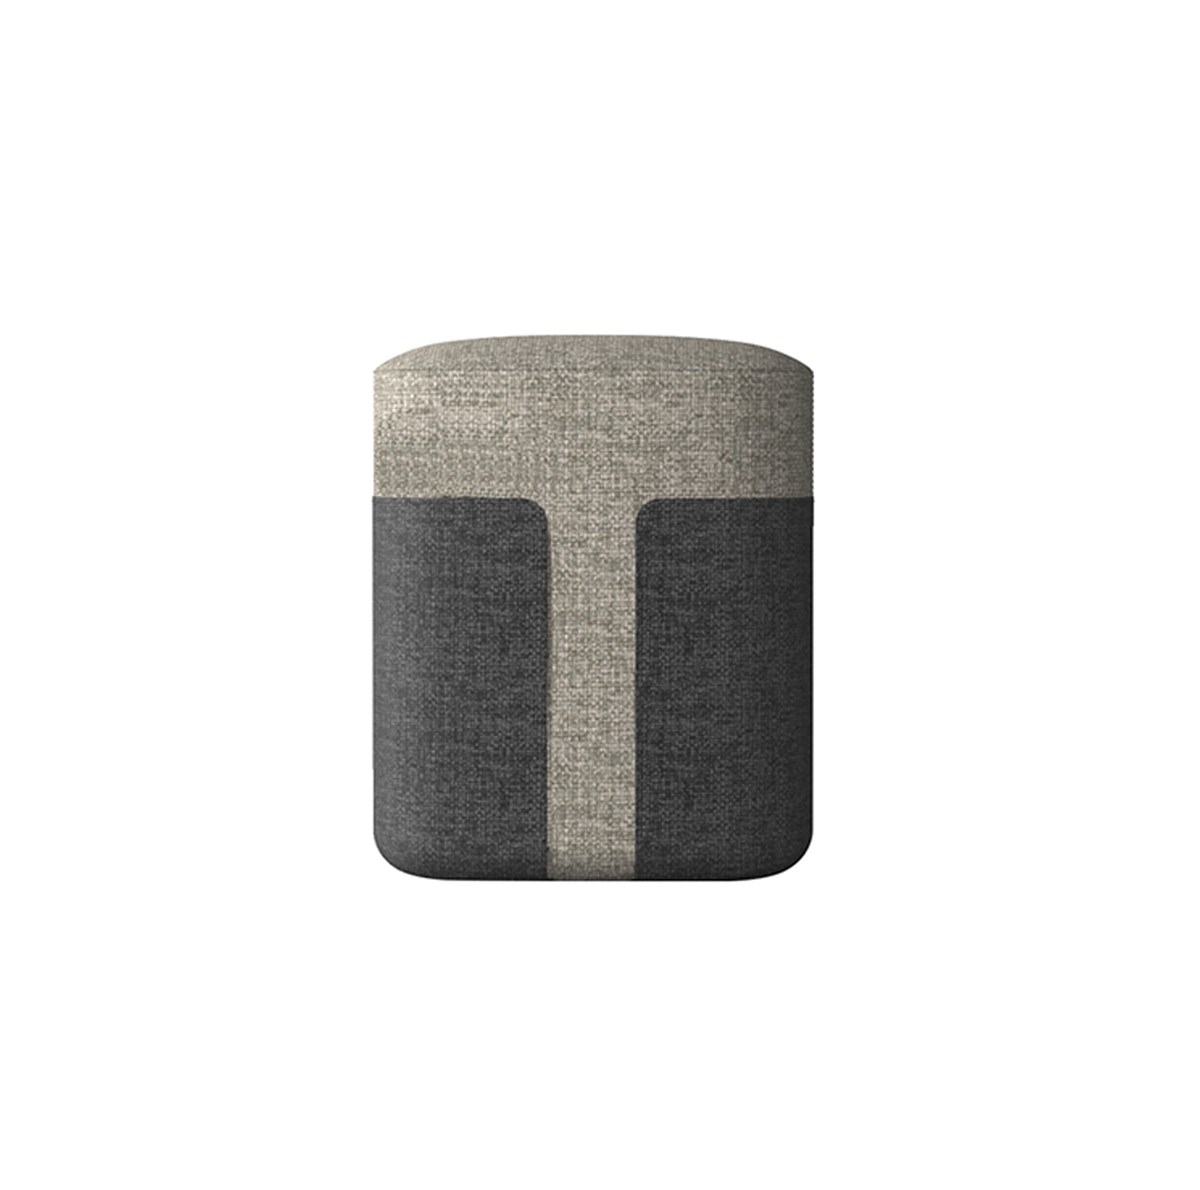 Neospace-Handy-Pouf-Contract-Matisse-1